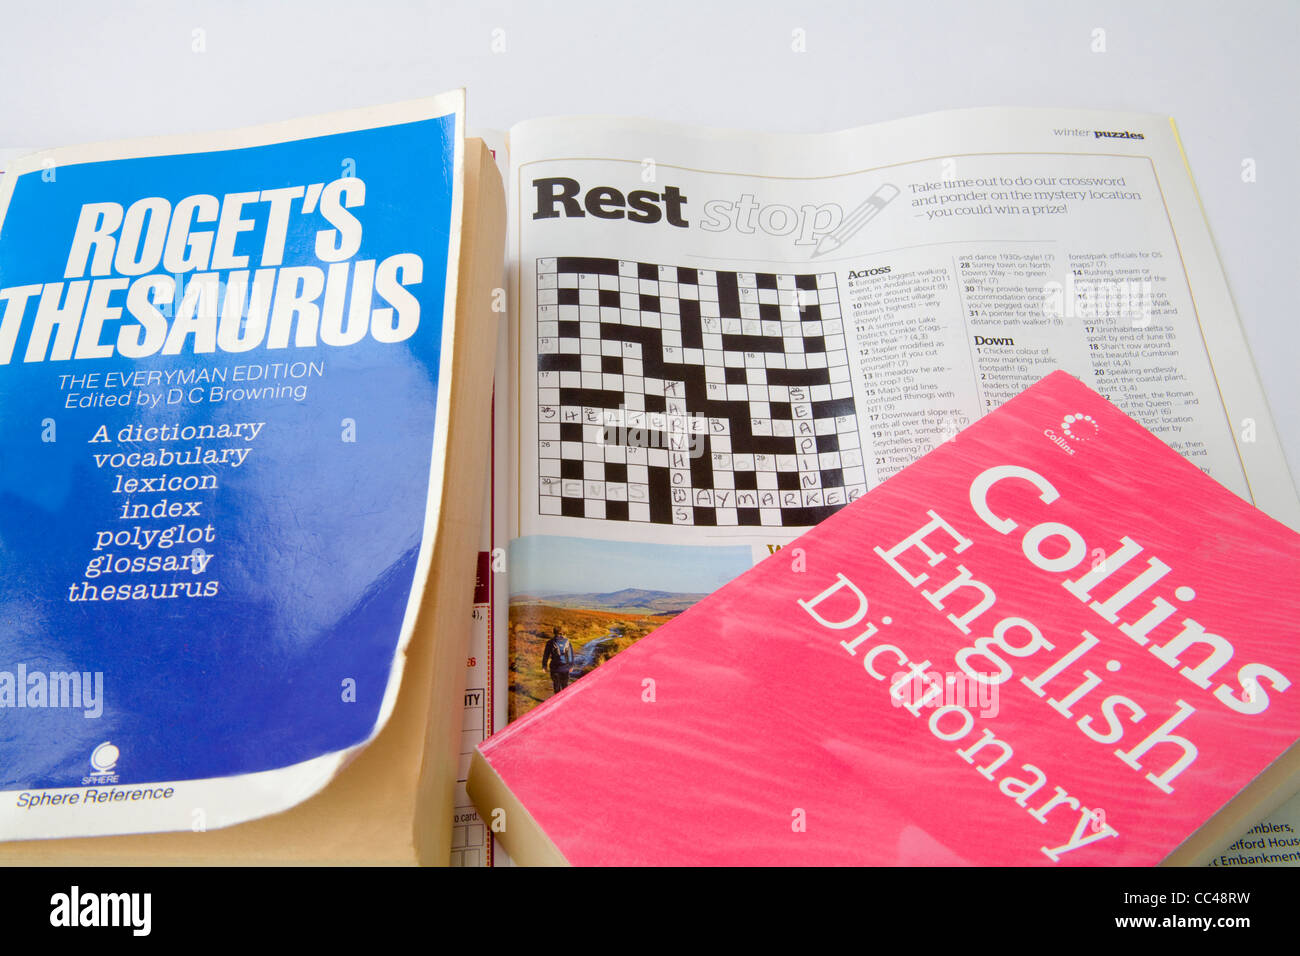 His Thesaurus Stock Photos & His Thesaurus Stock Images - Alamy